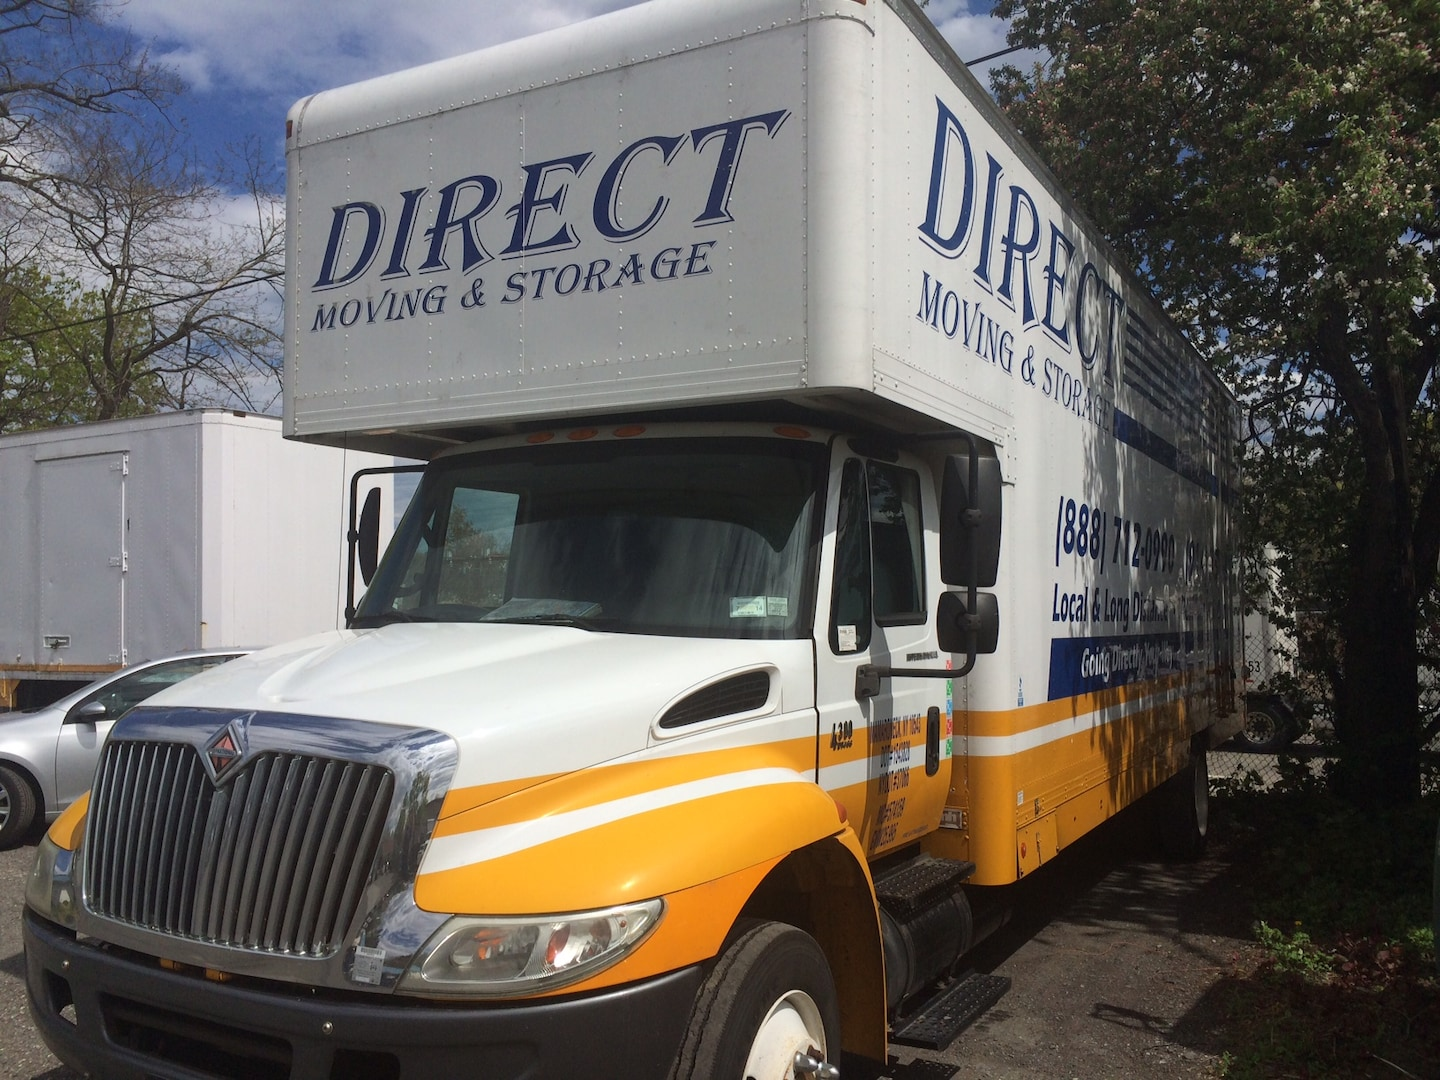 Direct Moving & Storage